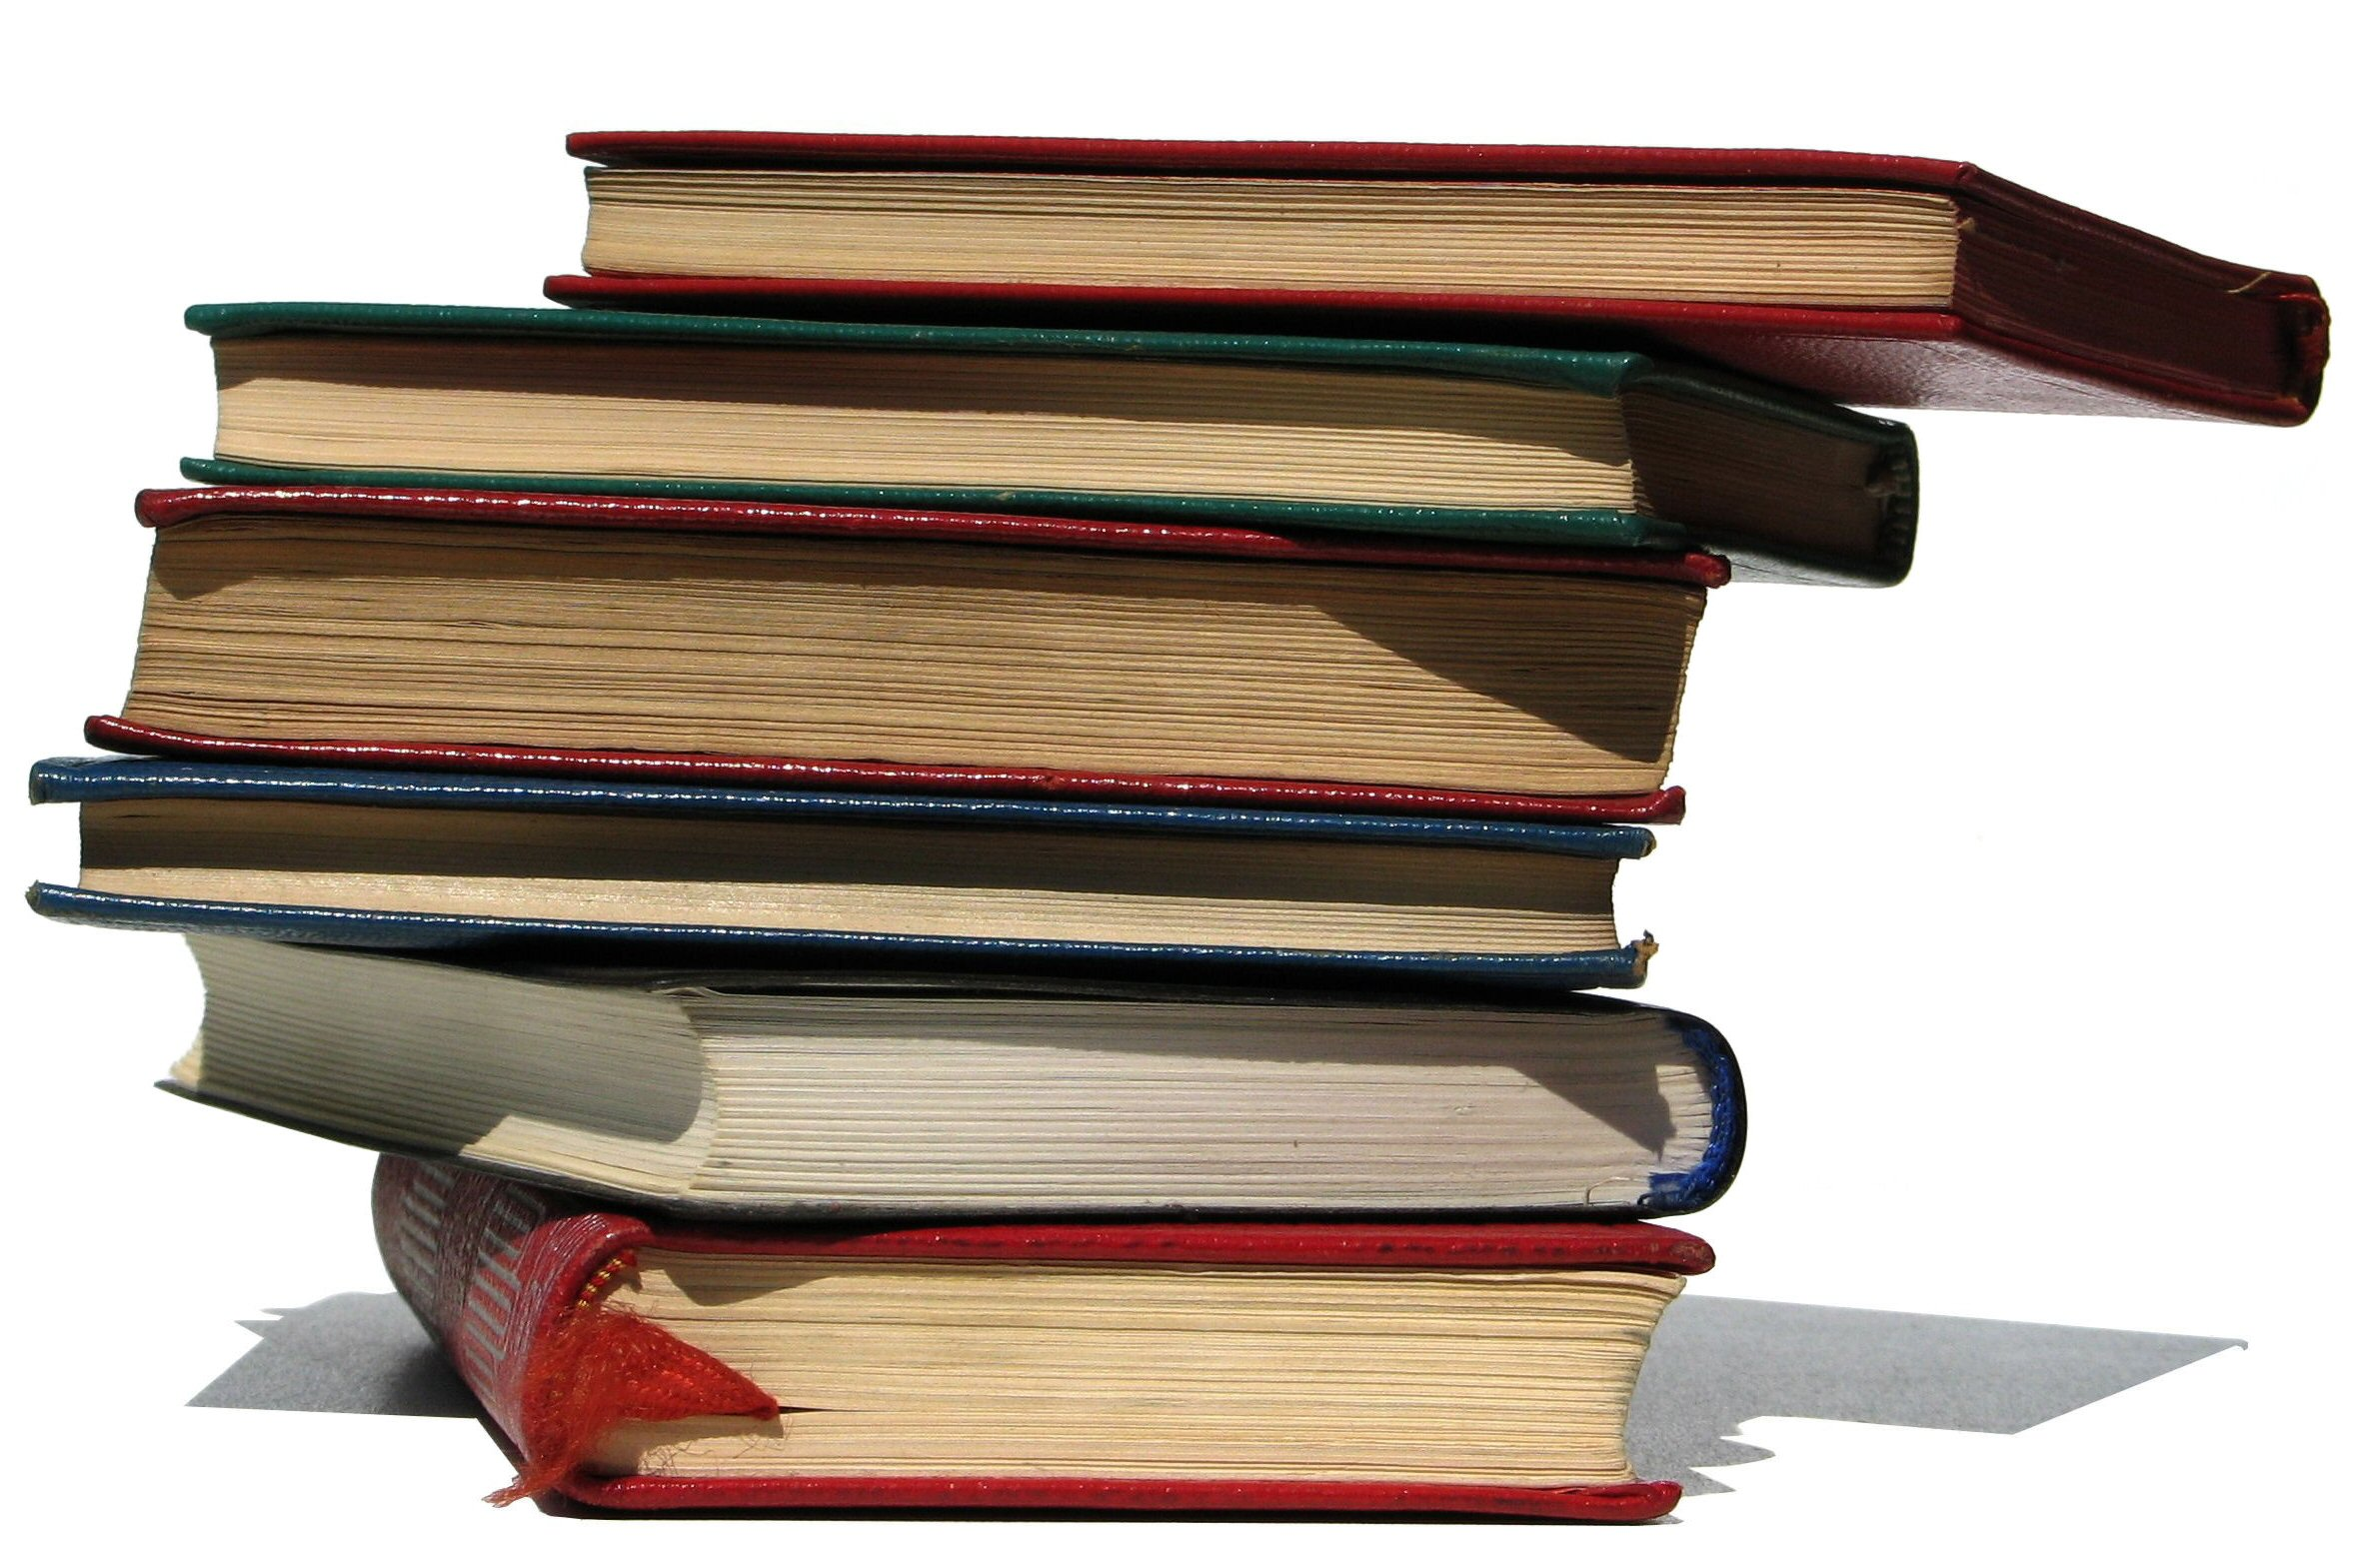 books stack dearth writing study university tutoring textbooks services northern virginia learning glimpse assignment short into help academic libros actutor